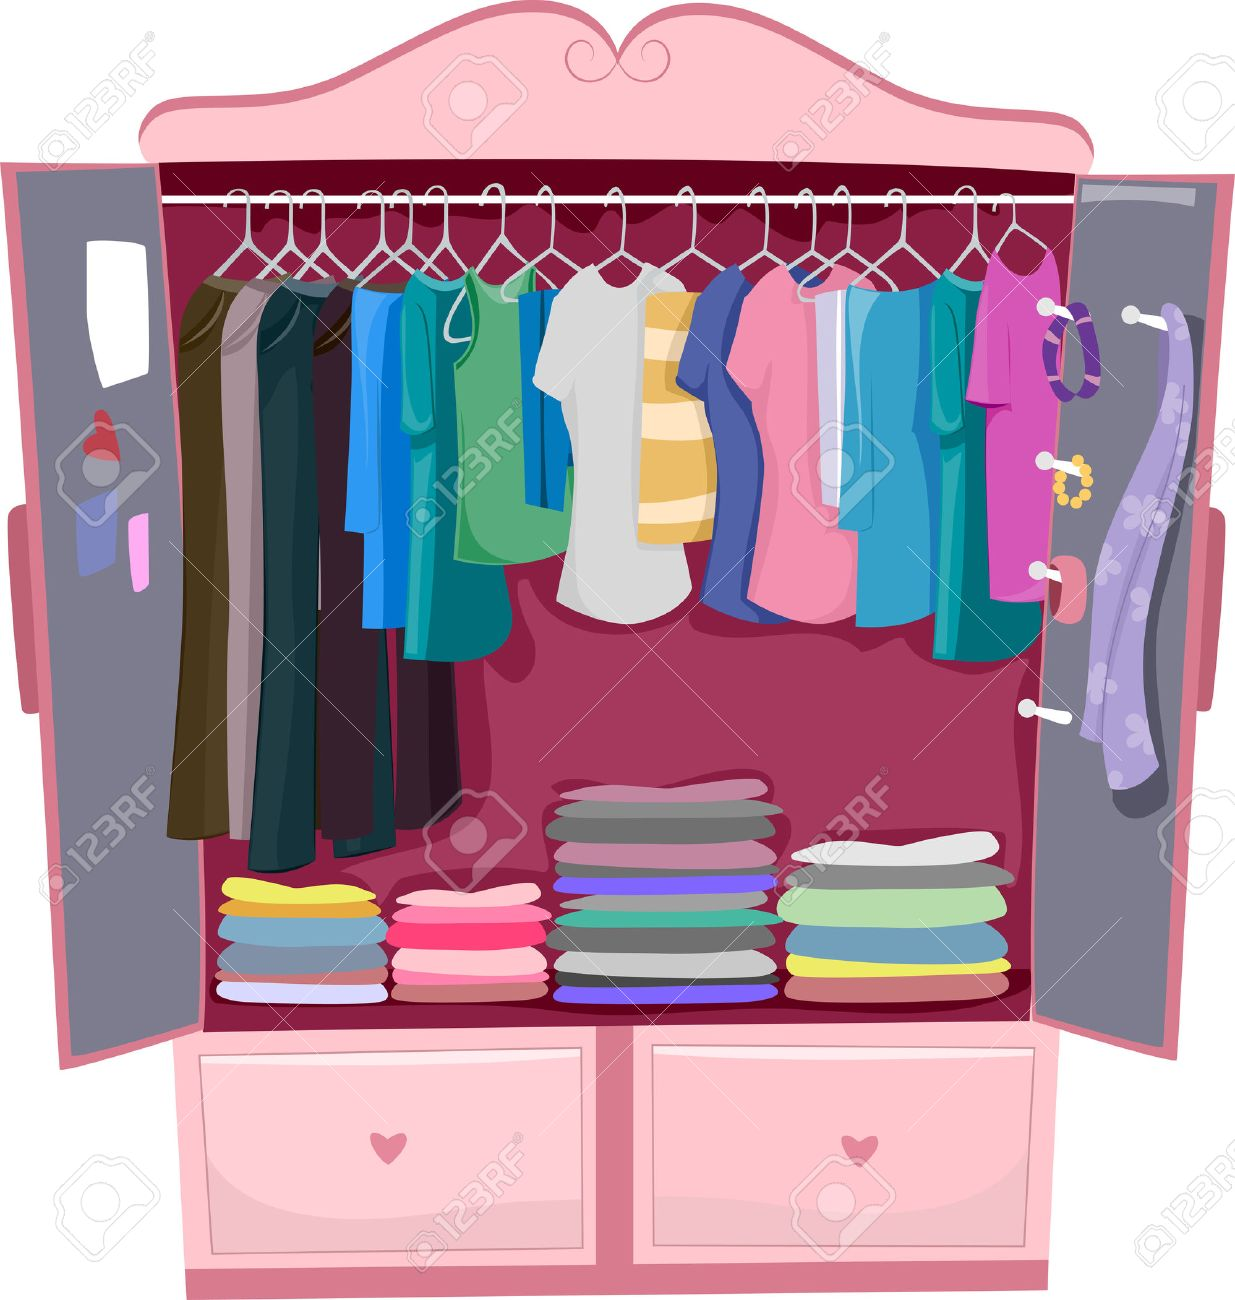 Illustration of a Pink Wardrobe Full of Women's Clothes - 29410152